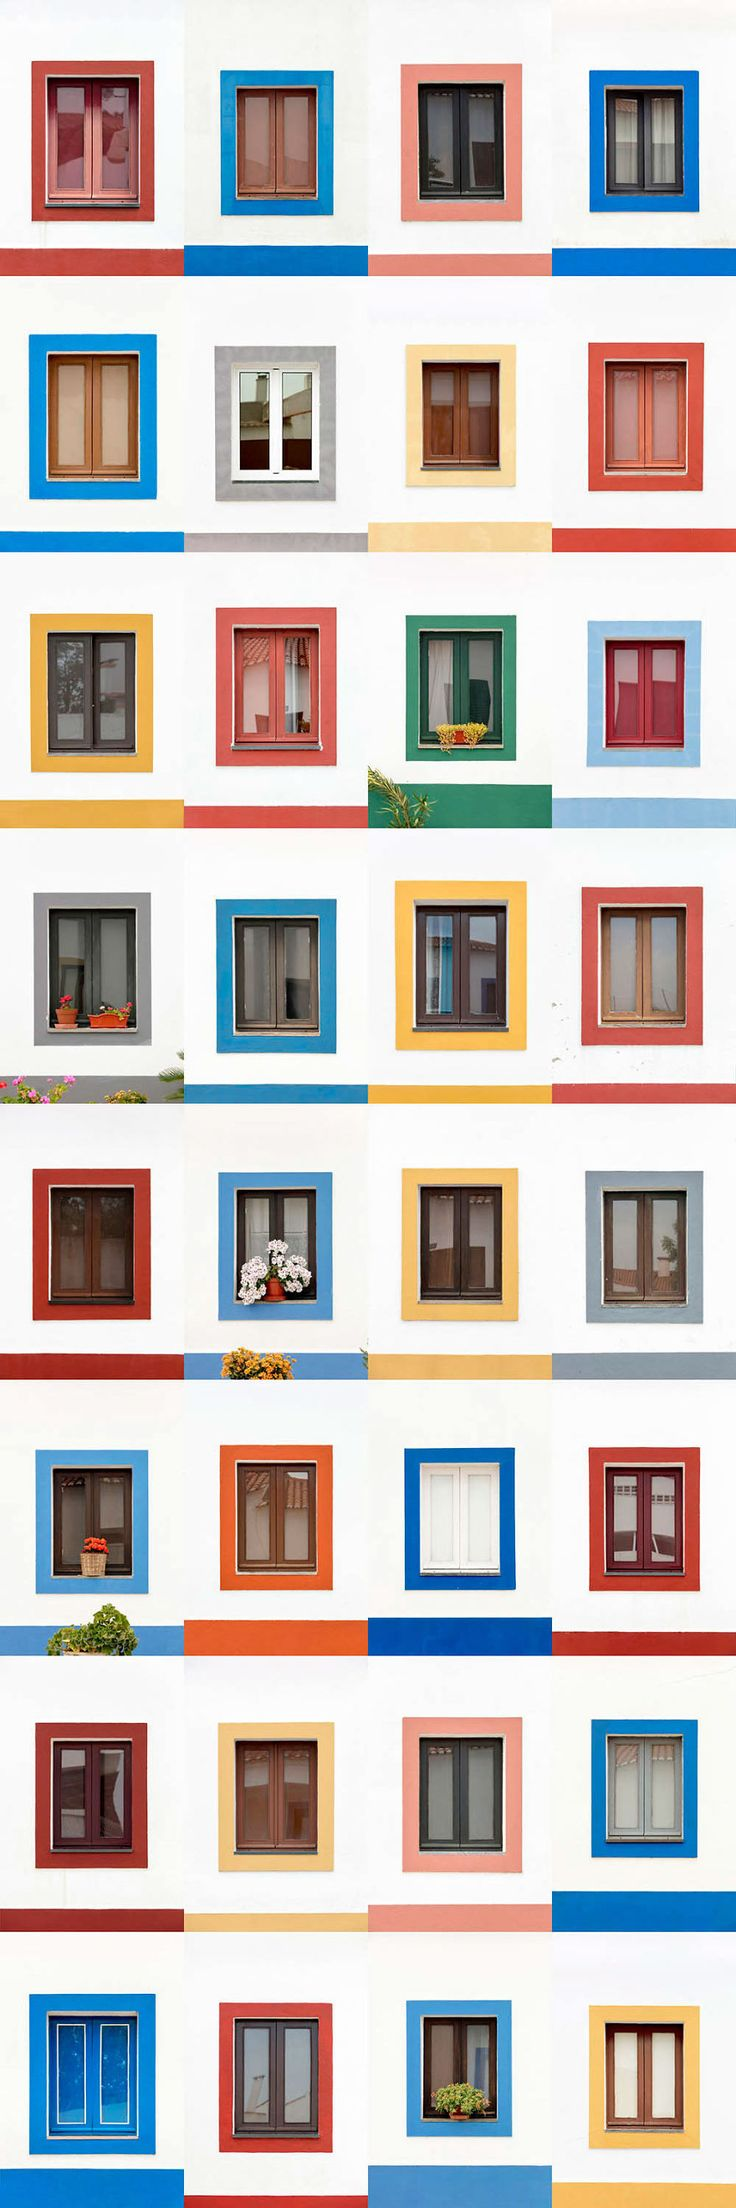 I Traveled All Over #Portugal To Photograph Windows, And Captured More Than 3200 Of Them - via BoredPanda 23-10-2017 | If you are planning a trip to Portugal, you can see which are the most beautiful cities to visit or what kind of architecture you like the most. Photo: Aldeia Da Luz